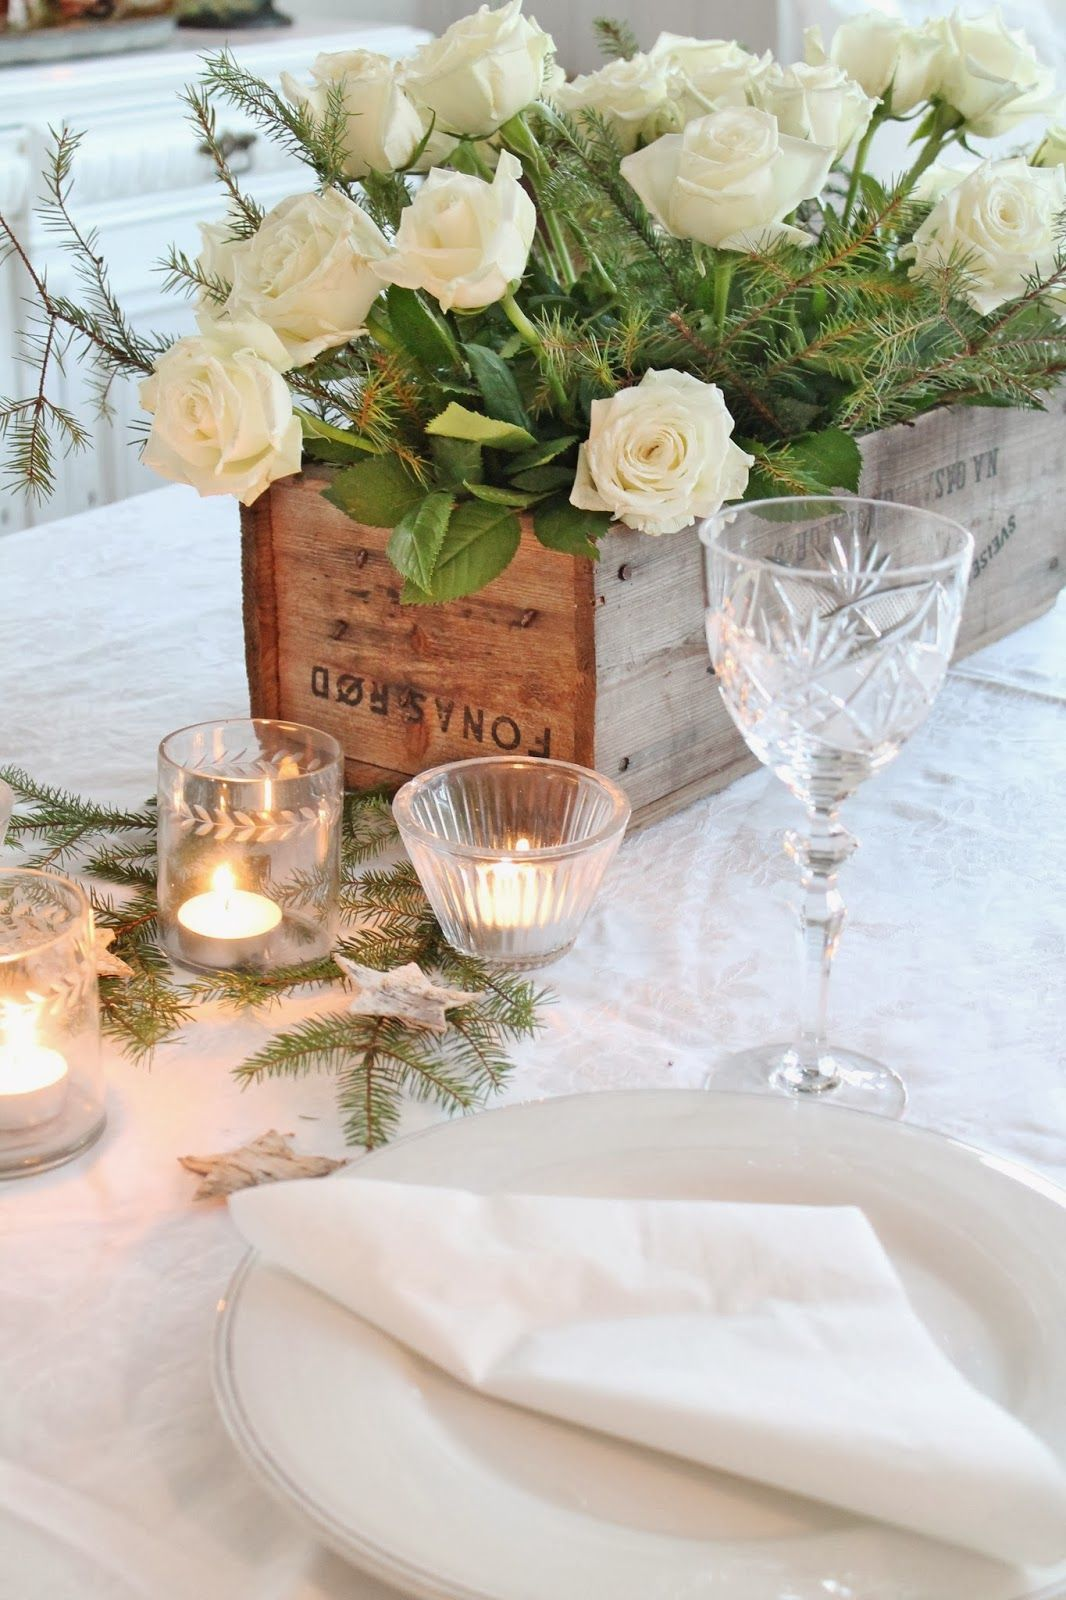 Love the box with roses in... rustic and elegant together - have each centerpiece be different!